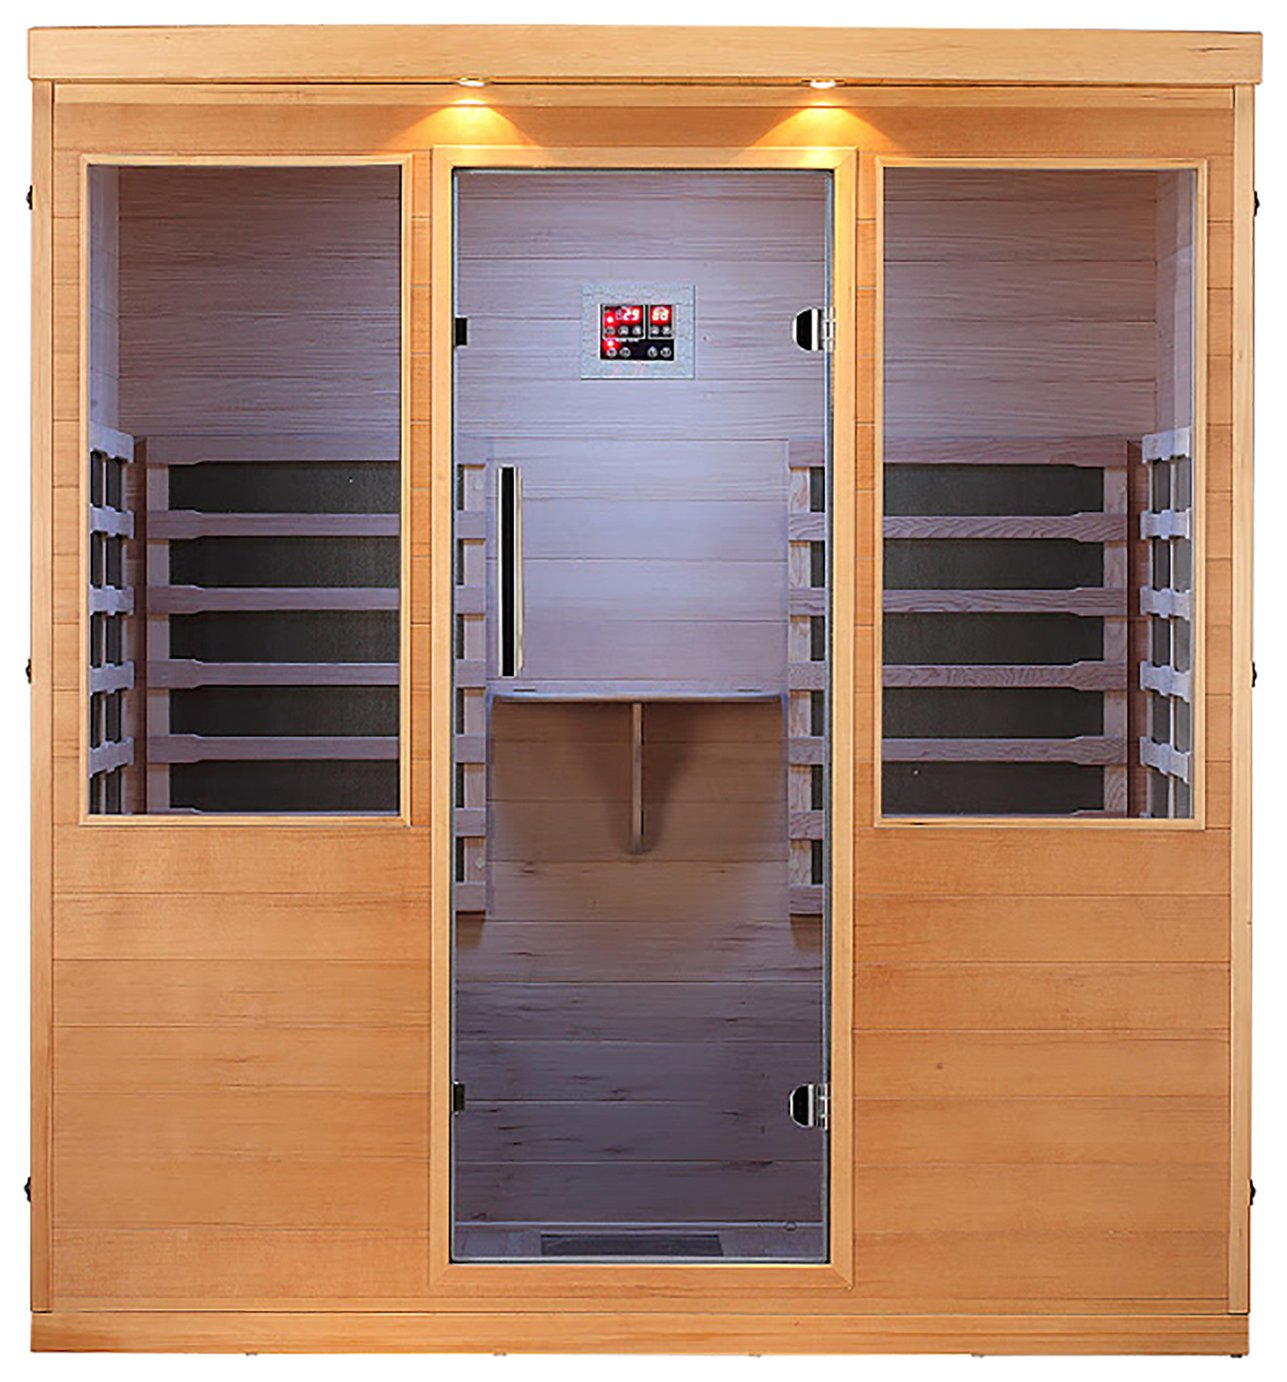 Canadian Spa Whistler 4 Person Far Sauna - 50HZ from Canadian Spa Company